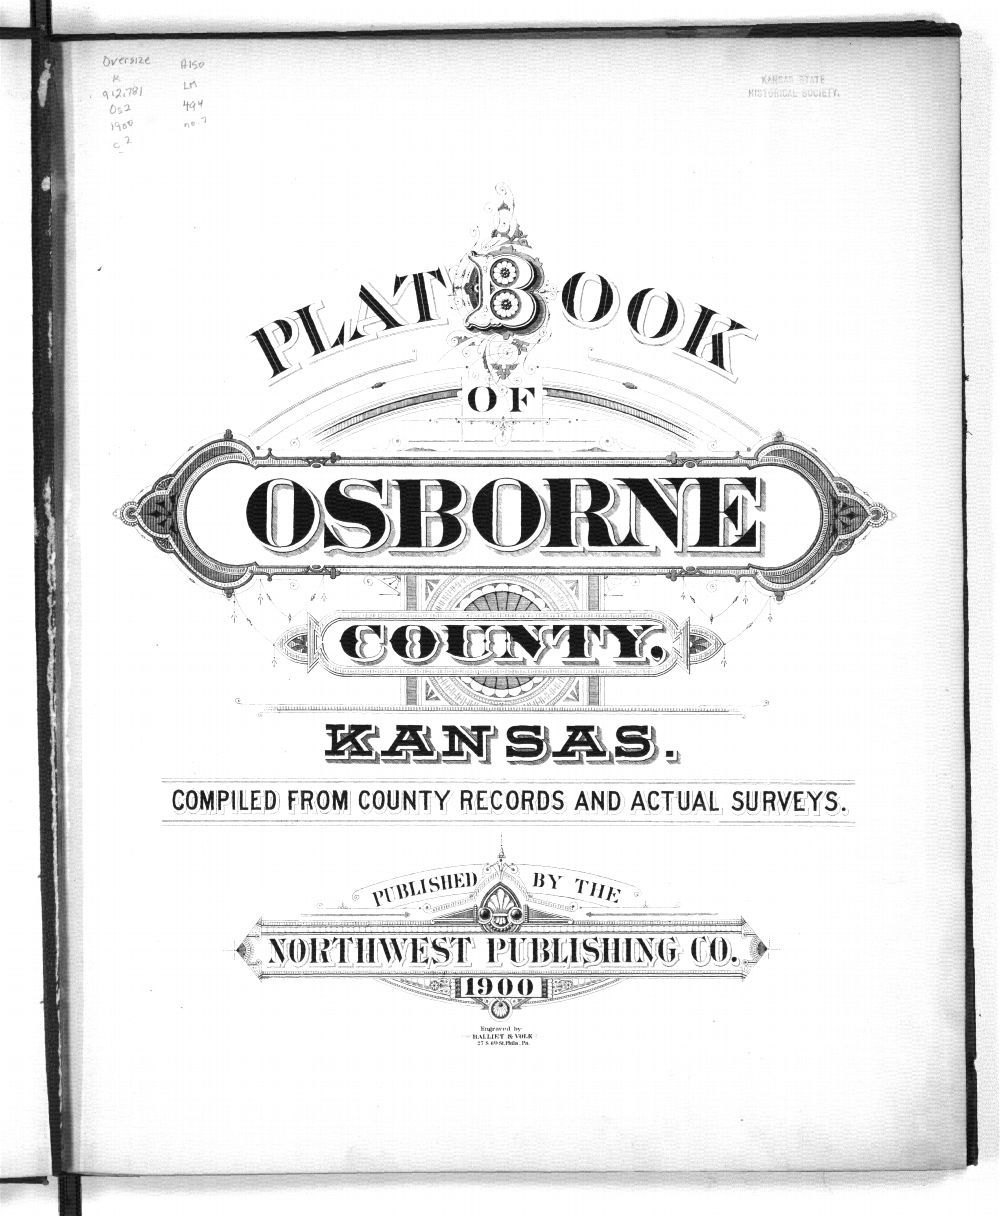 Plat book of Osborne County, Kansas - Title Page